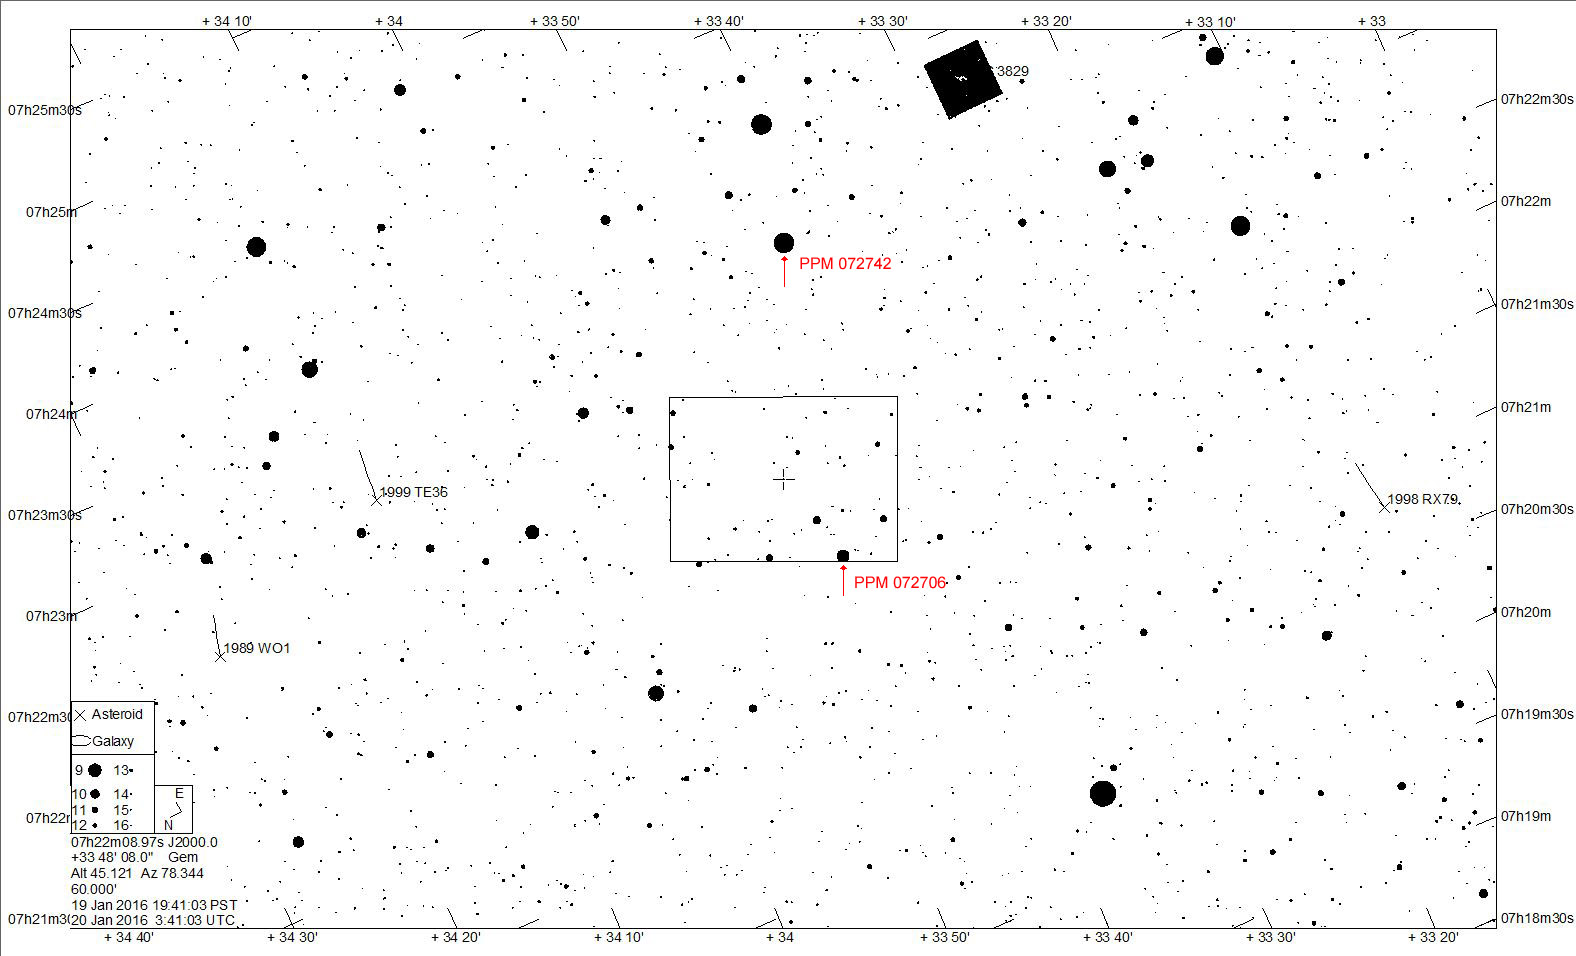 1-degree star chart for 03WL7 on 2016 January 20 UTC